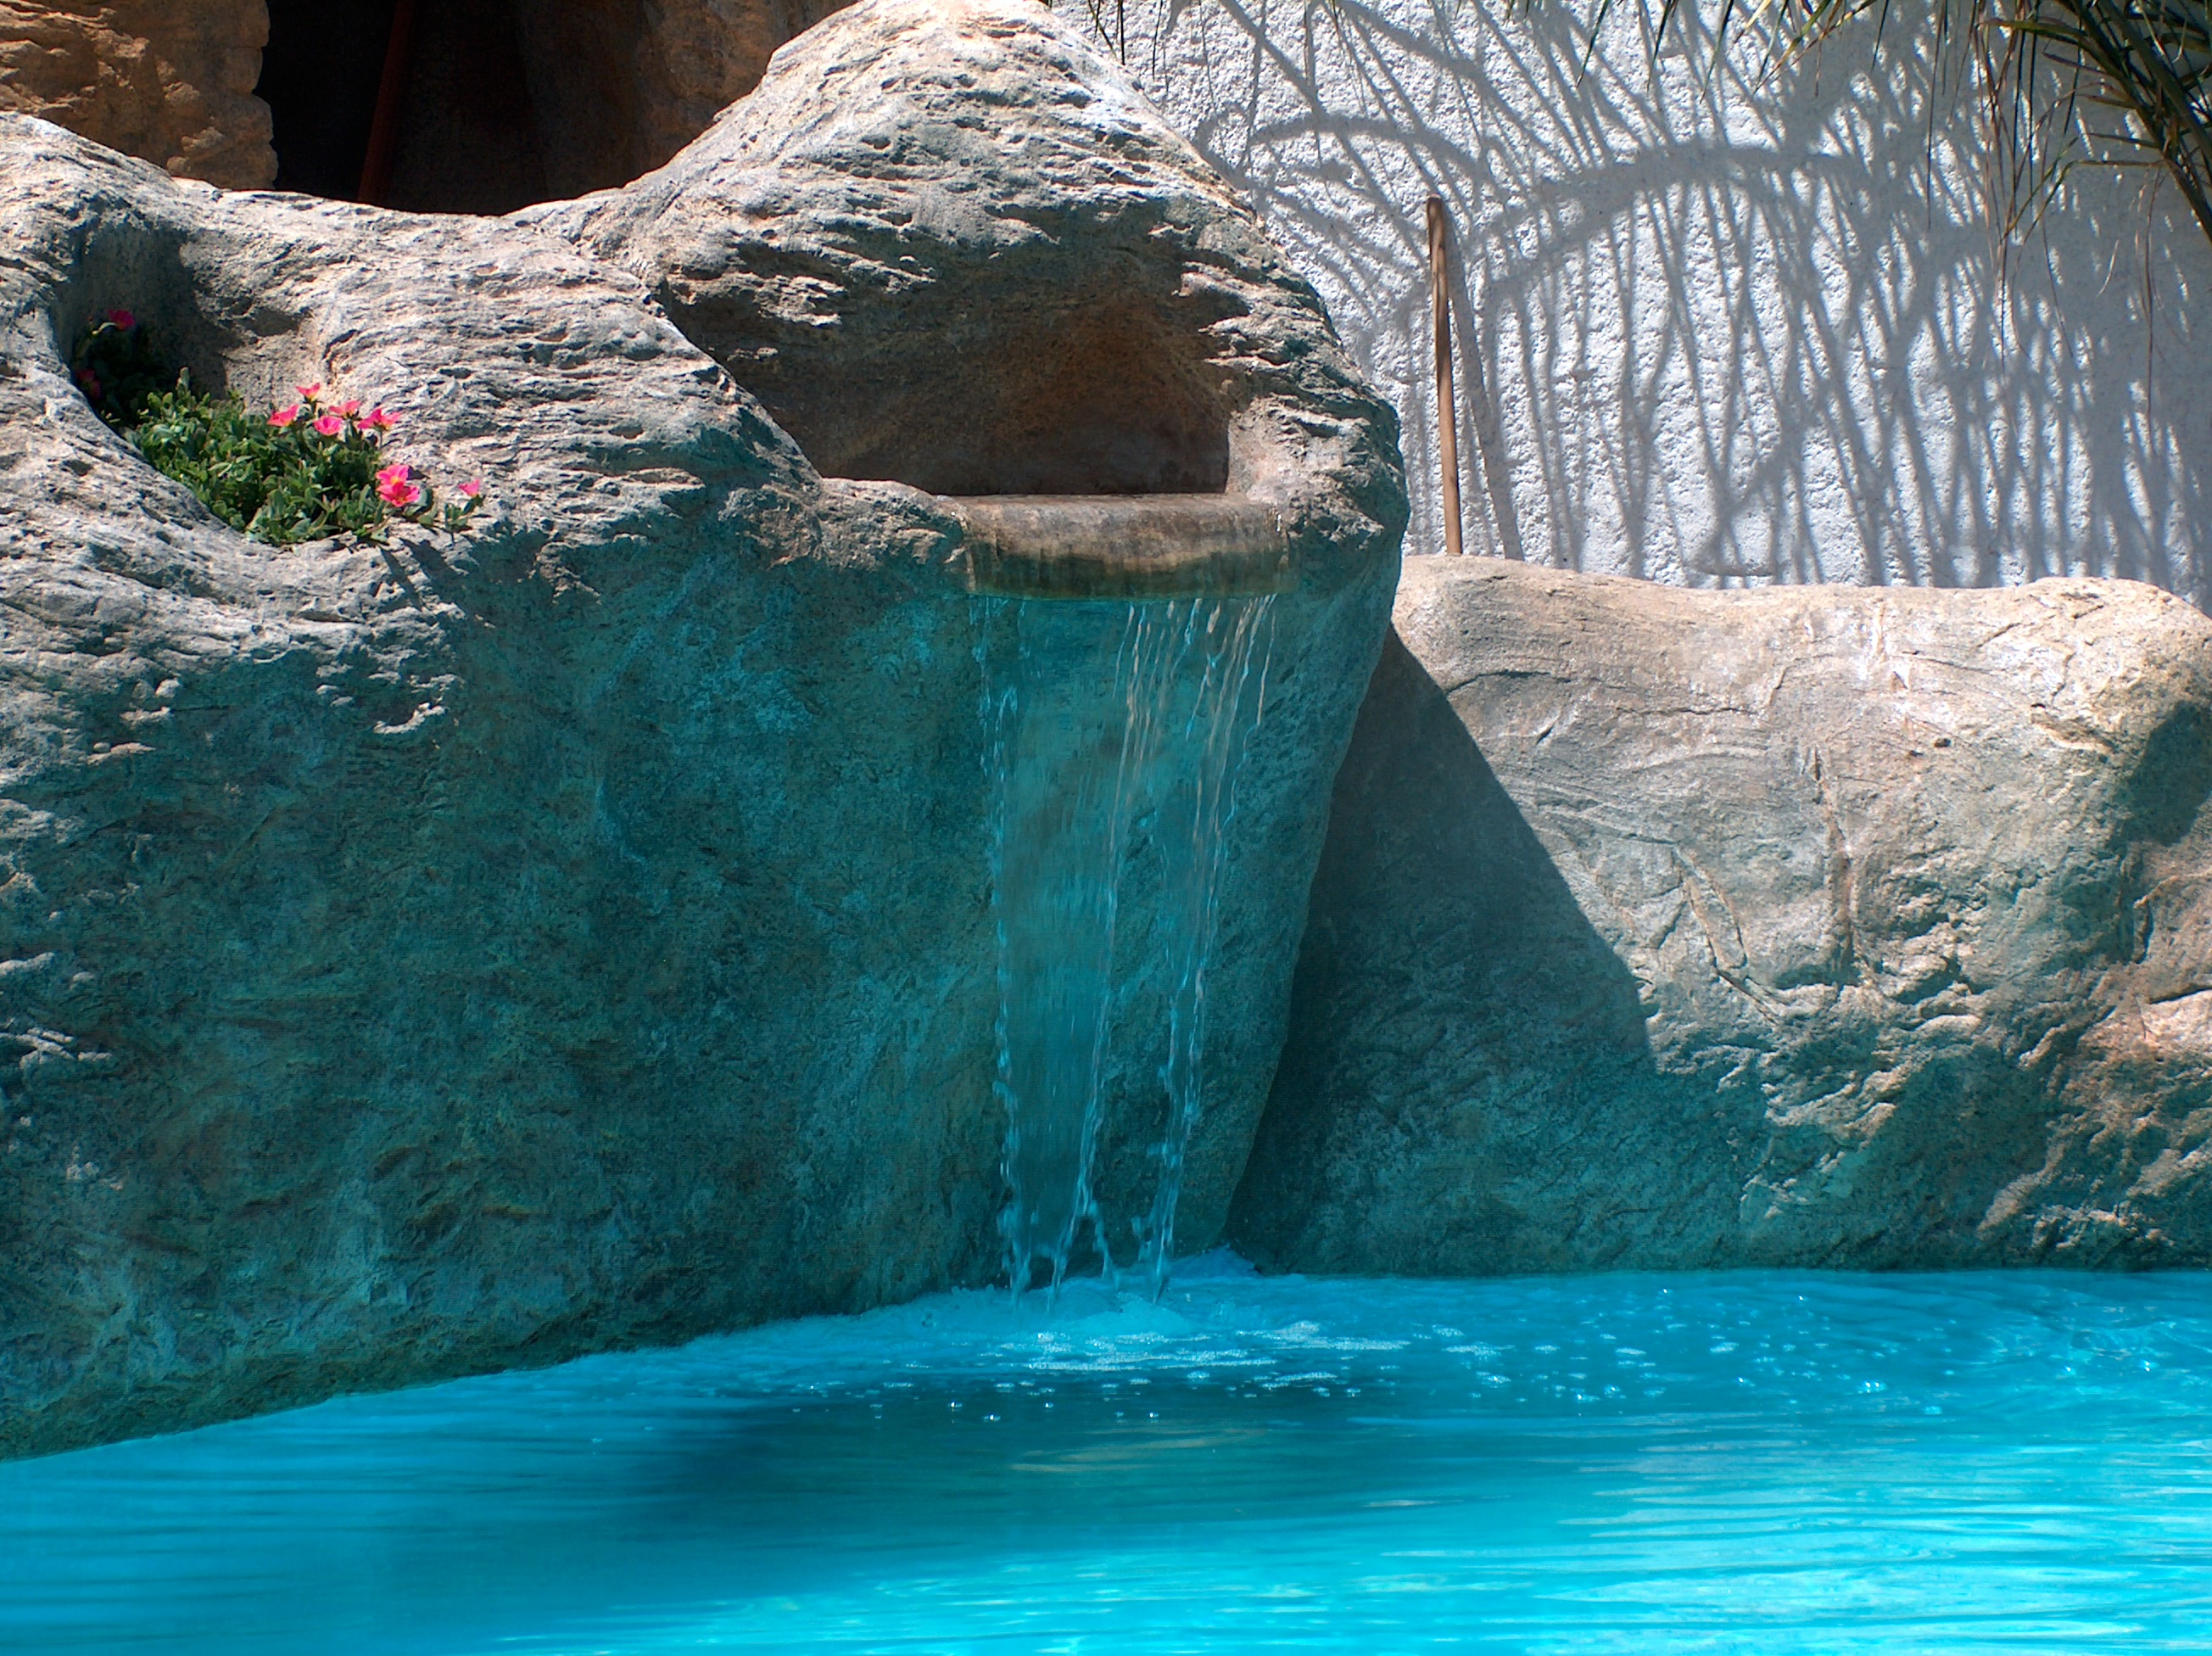 piscine con rocce artificiali5